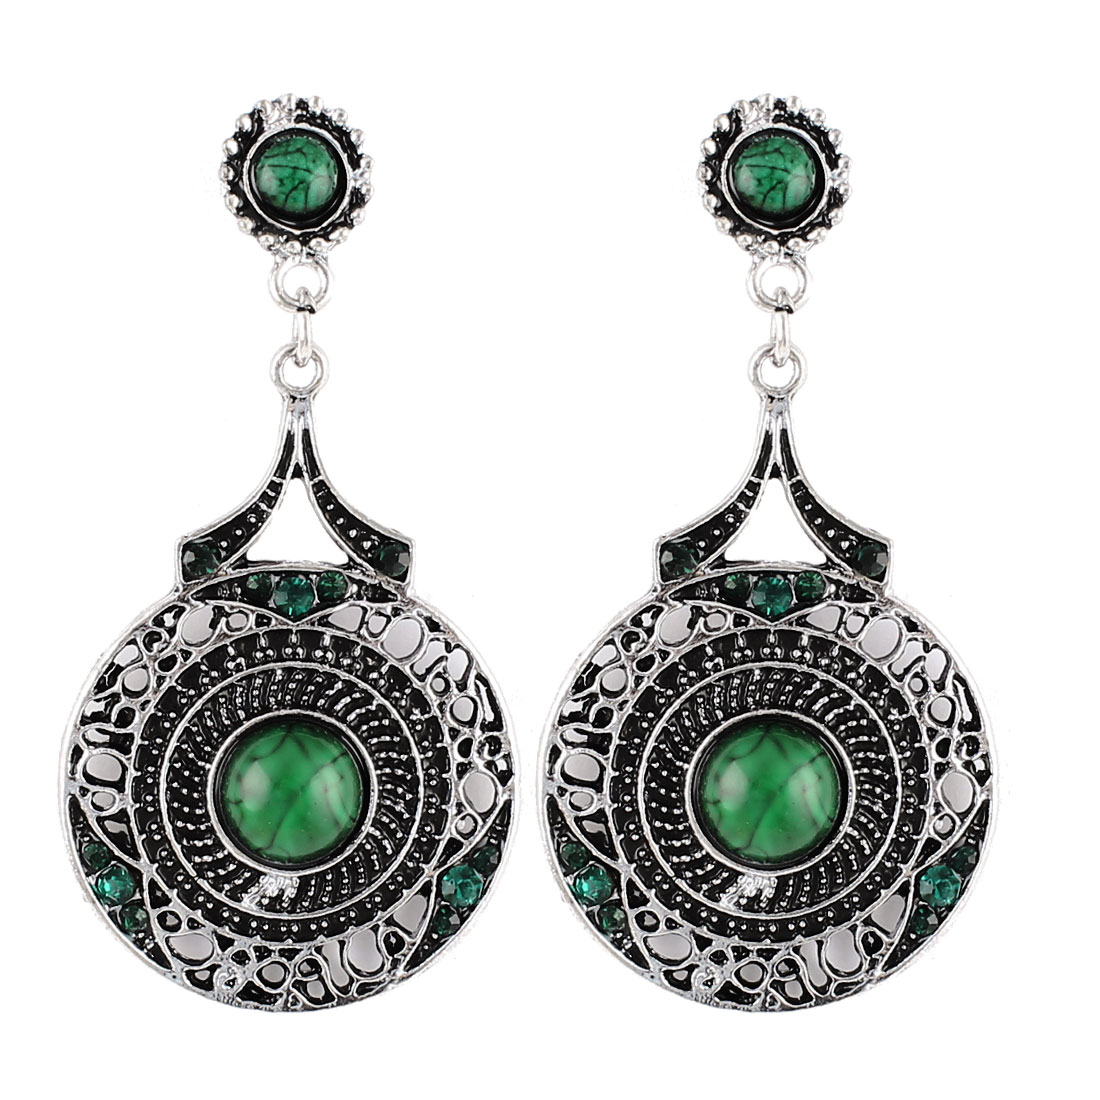 Unique Bargains Bohemian Style Green Bead Inlaid Dangle Ear Hook Earring Eardrop Pair